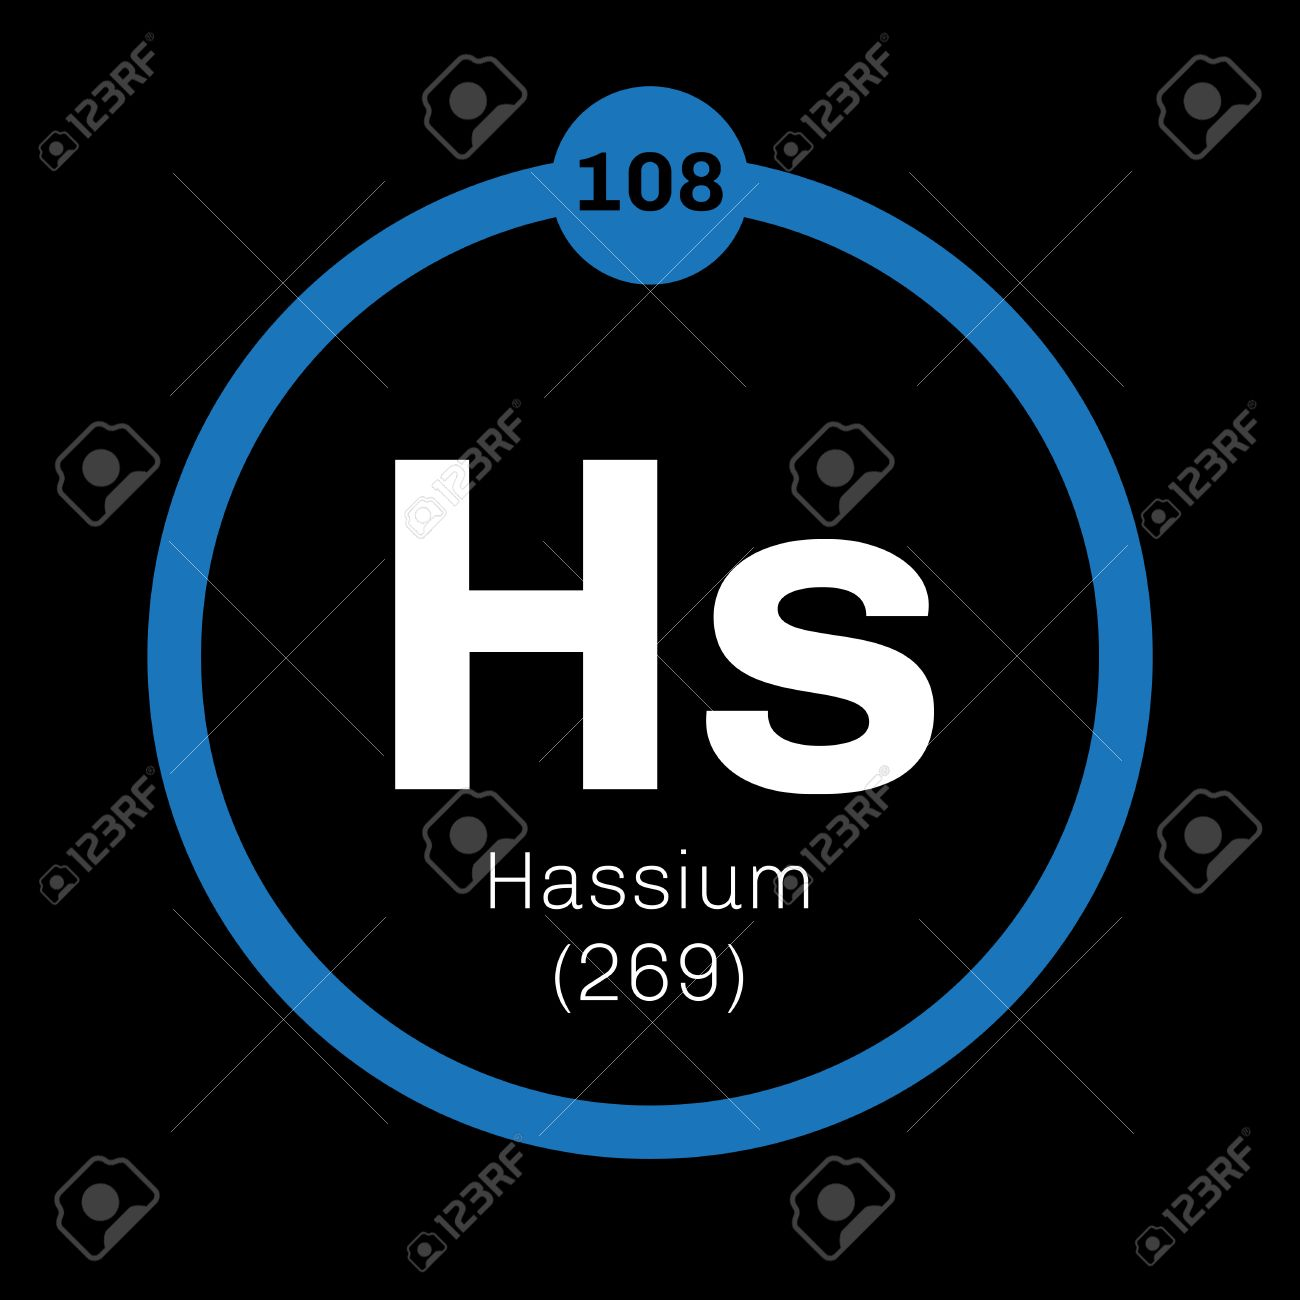 Hassium chemical element radioactive synthetic element colored hassium chemical element radioactive synthetic element colored icon with atomic number and atomic weight gamestrikefo Gallery